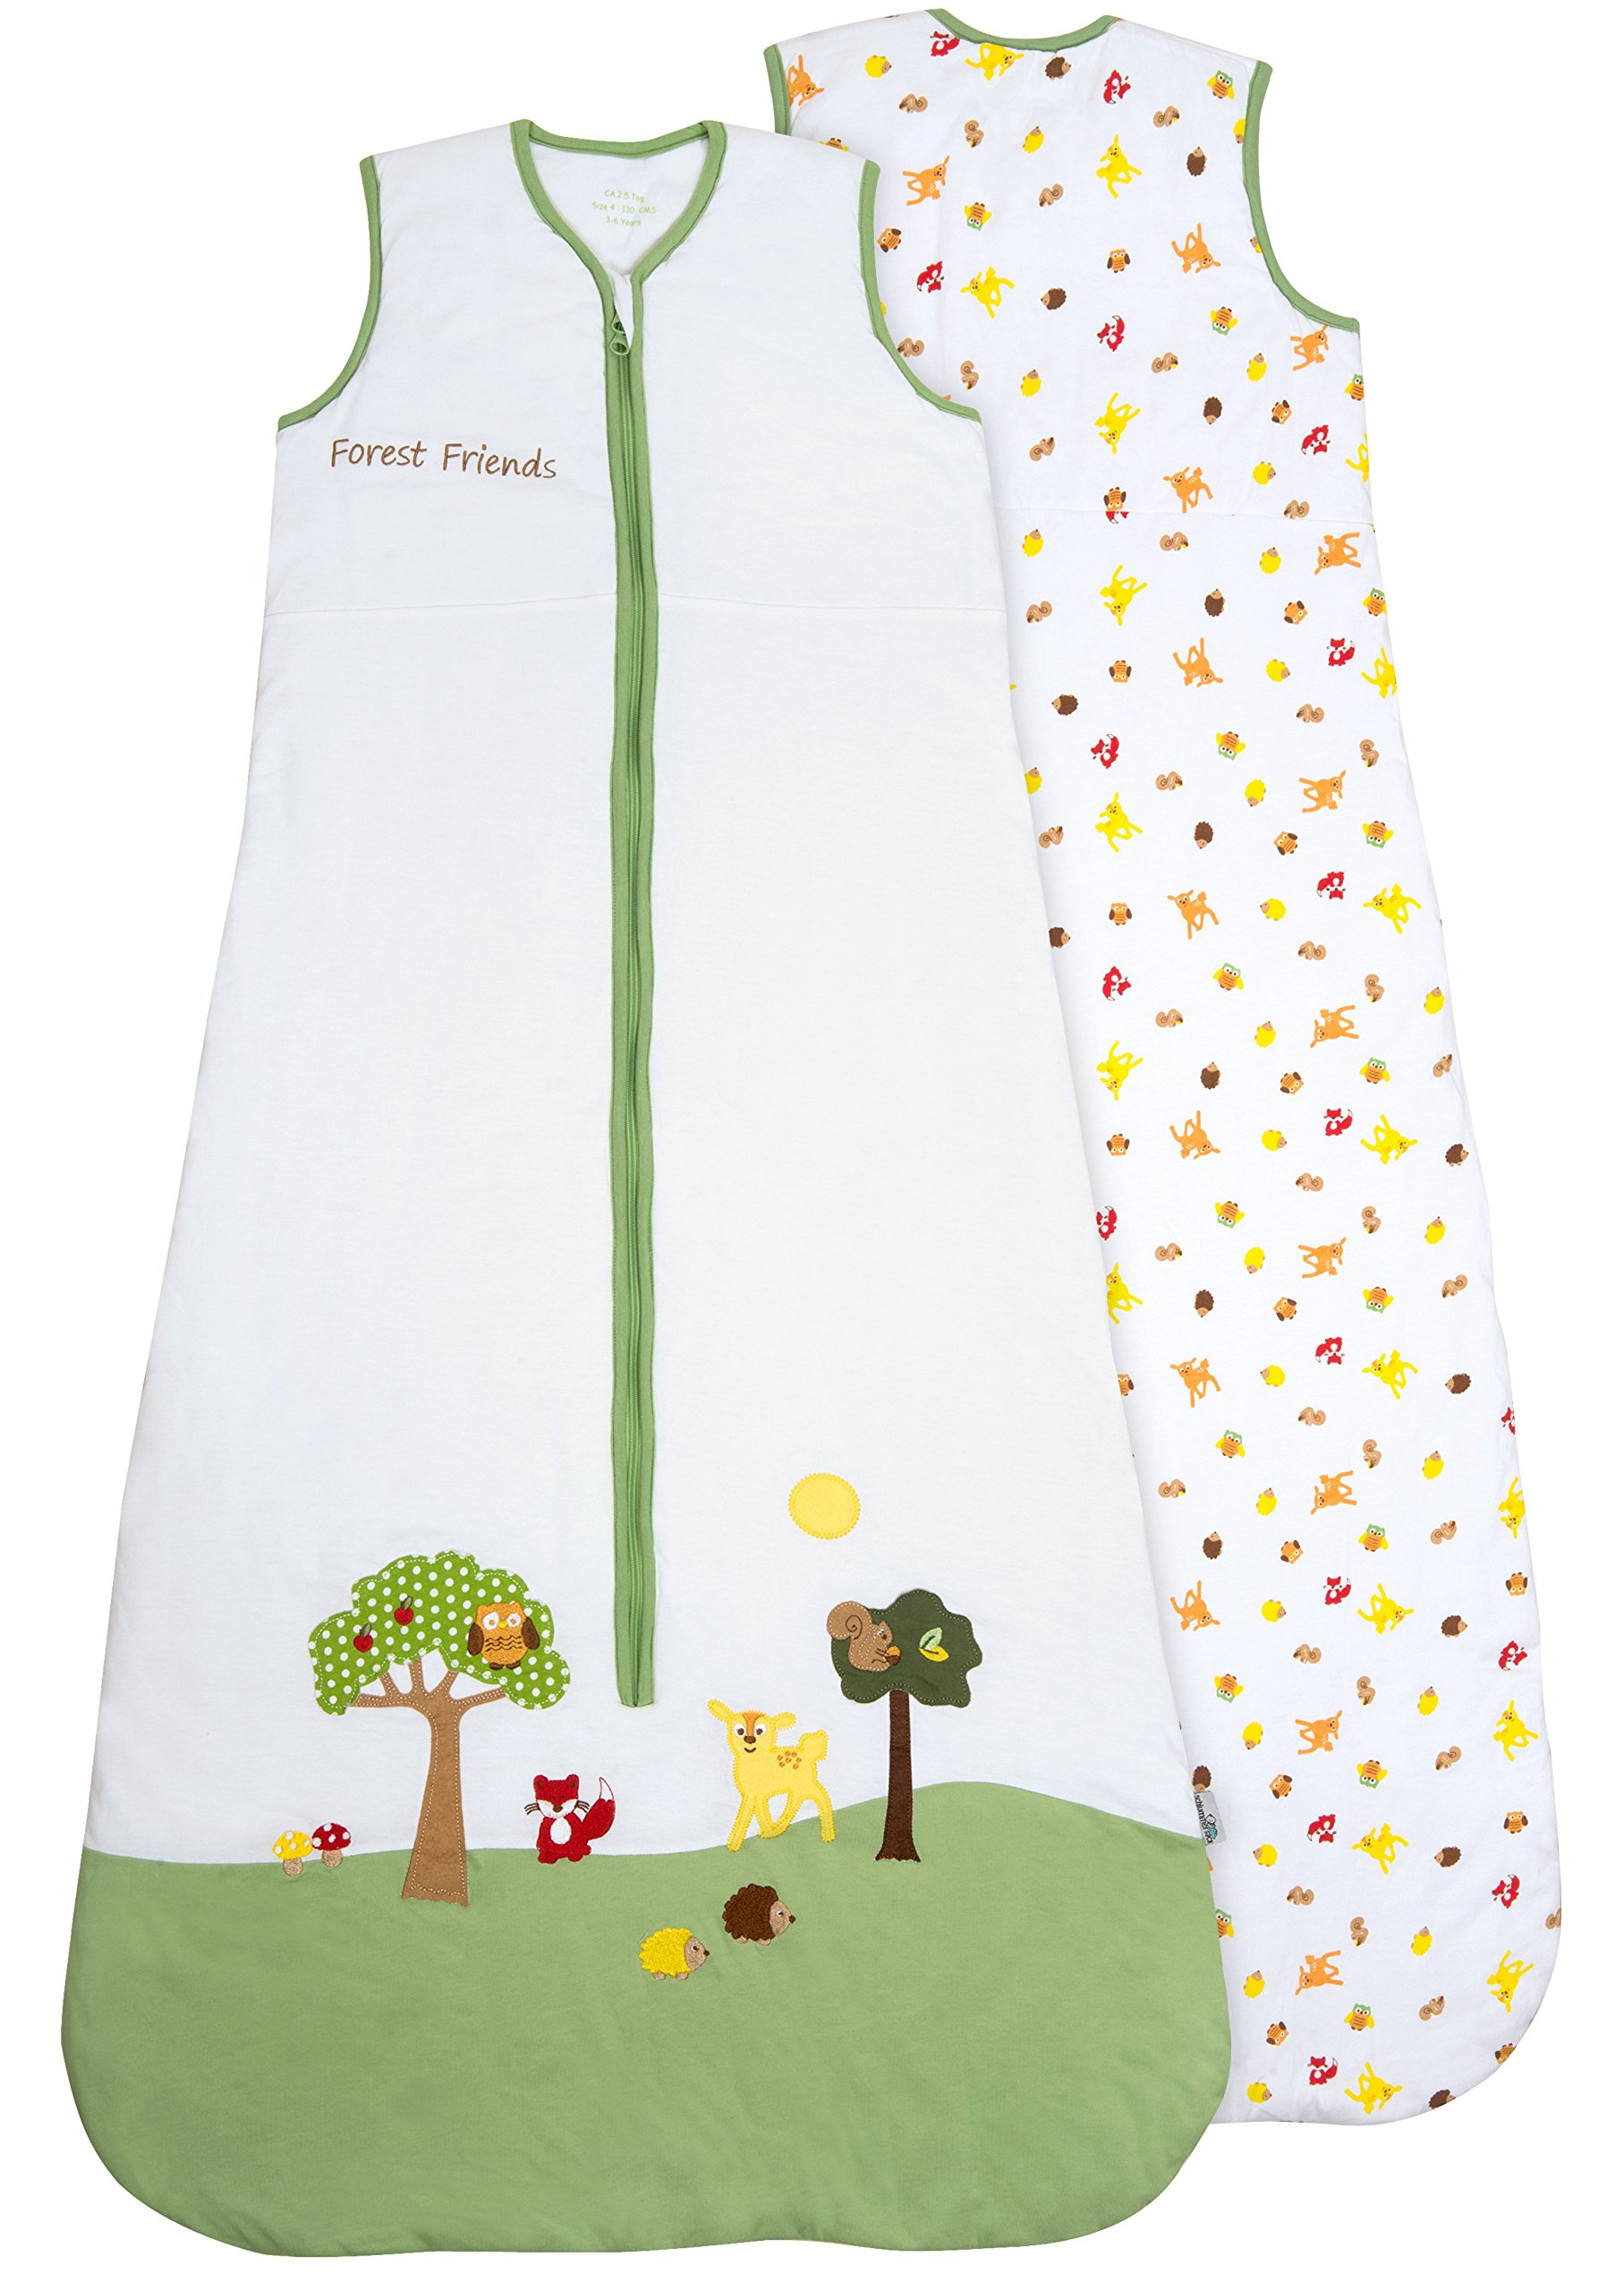 SlumberSafe Kids Summer Sleeping Bag 1 Tog Forest Friends 3-6 years XL